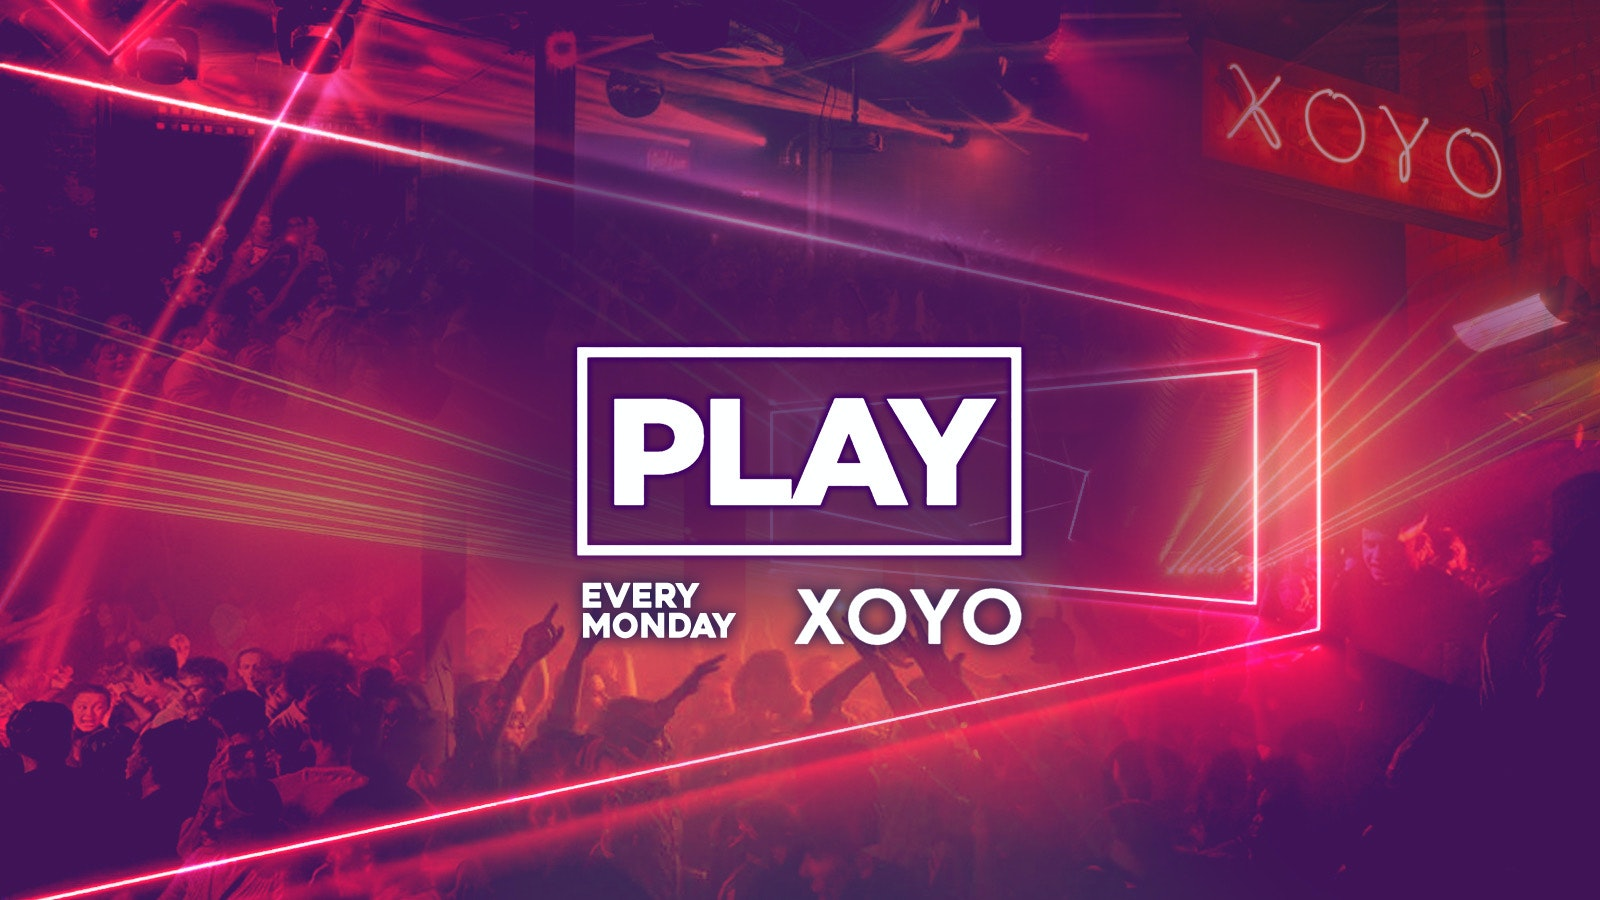 Play London Every Monday at XOYO! This event will sell out ⚠️